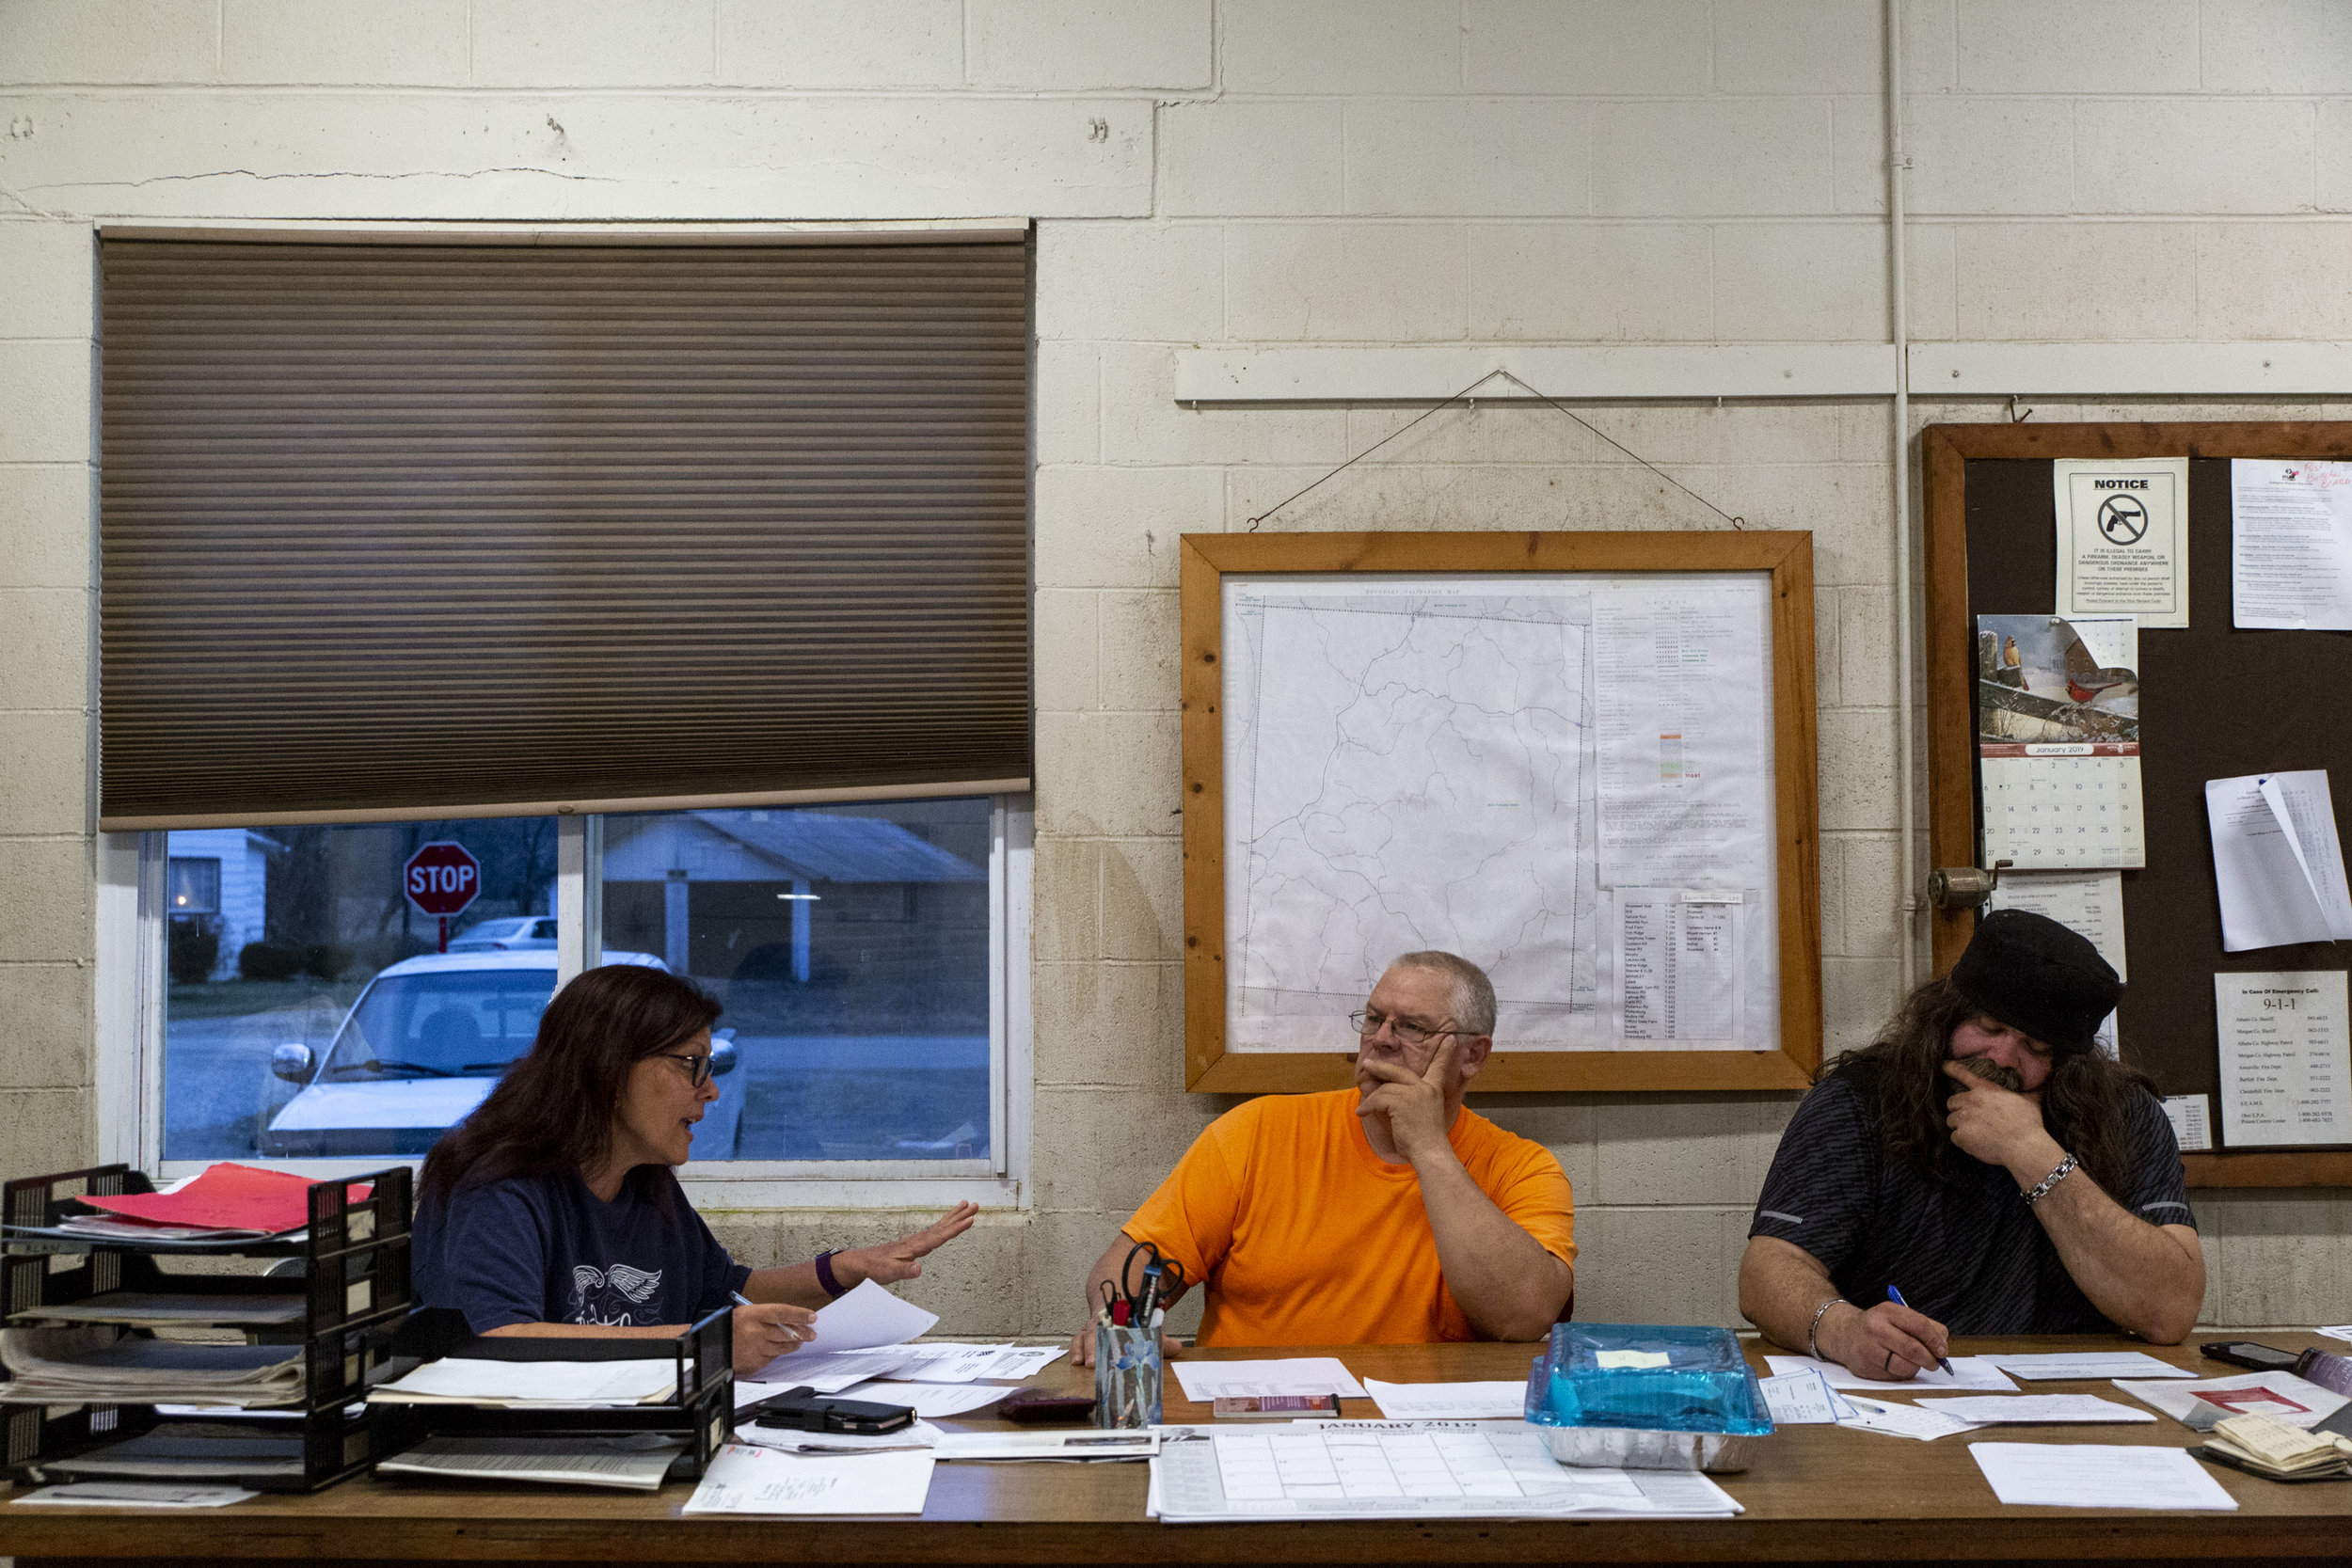 Bern Township Fiscal Officer Denise Tate and Trustees David Bennett and Alan Gilchrist discuss FEMA during their monthly meeting at Town Hall in Sharpsburg. As an unincorporated community, Sharpsburg is not governed by a municipal corporation and is, instead, administered as part of Bern Township.